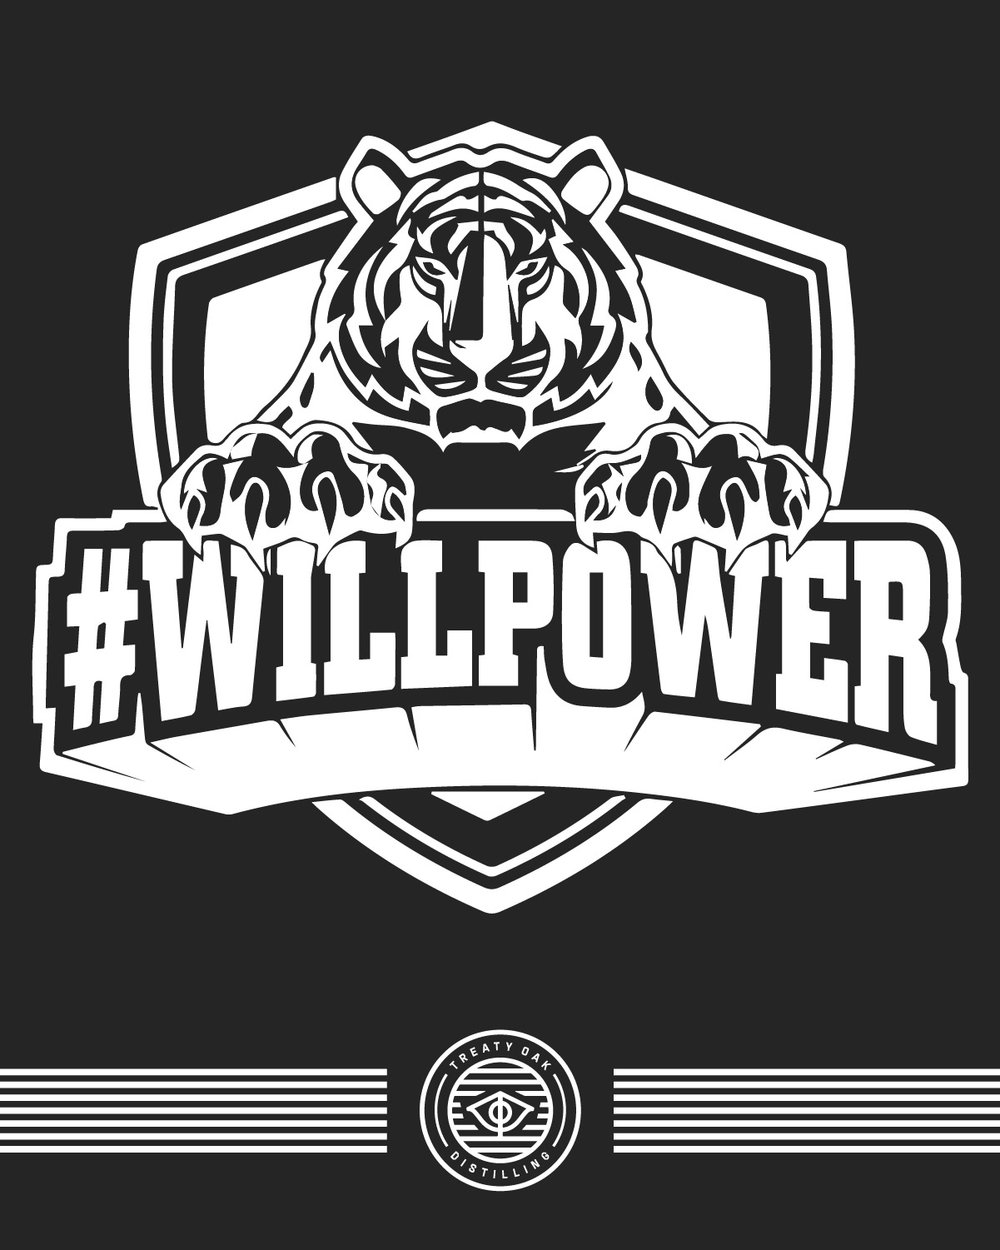 will power -06.jpg